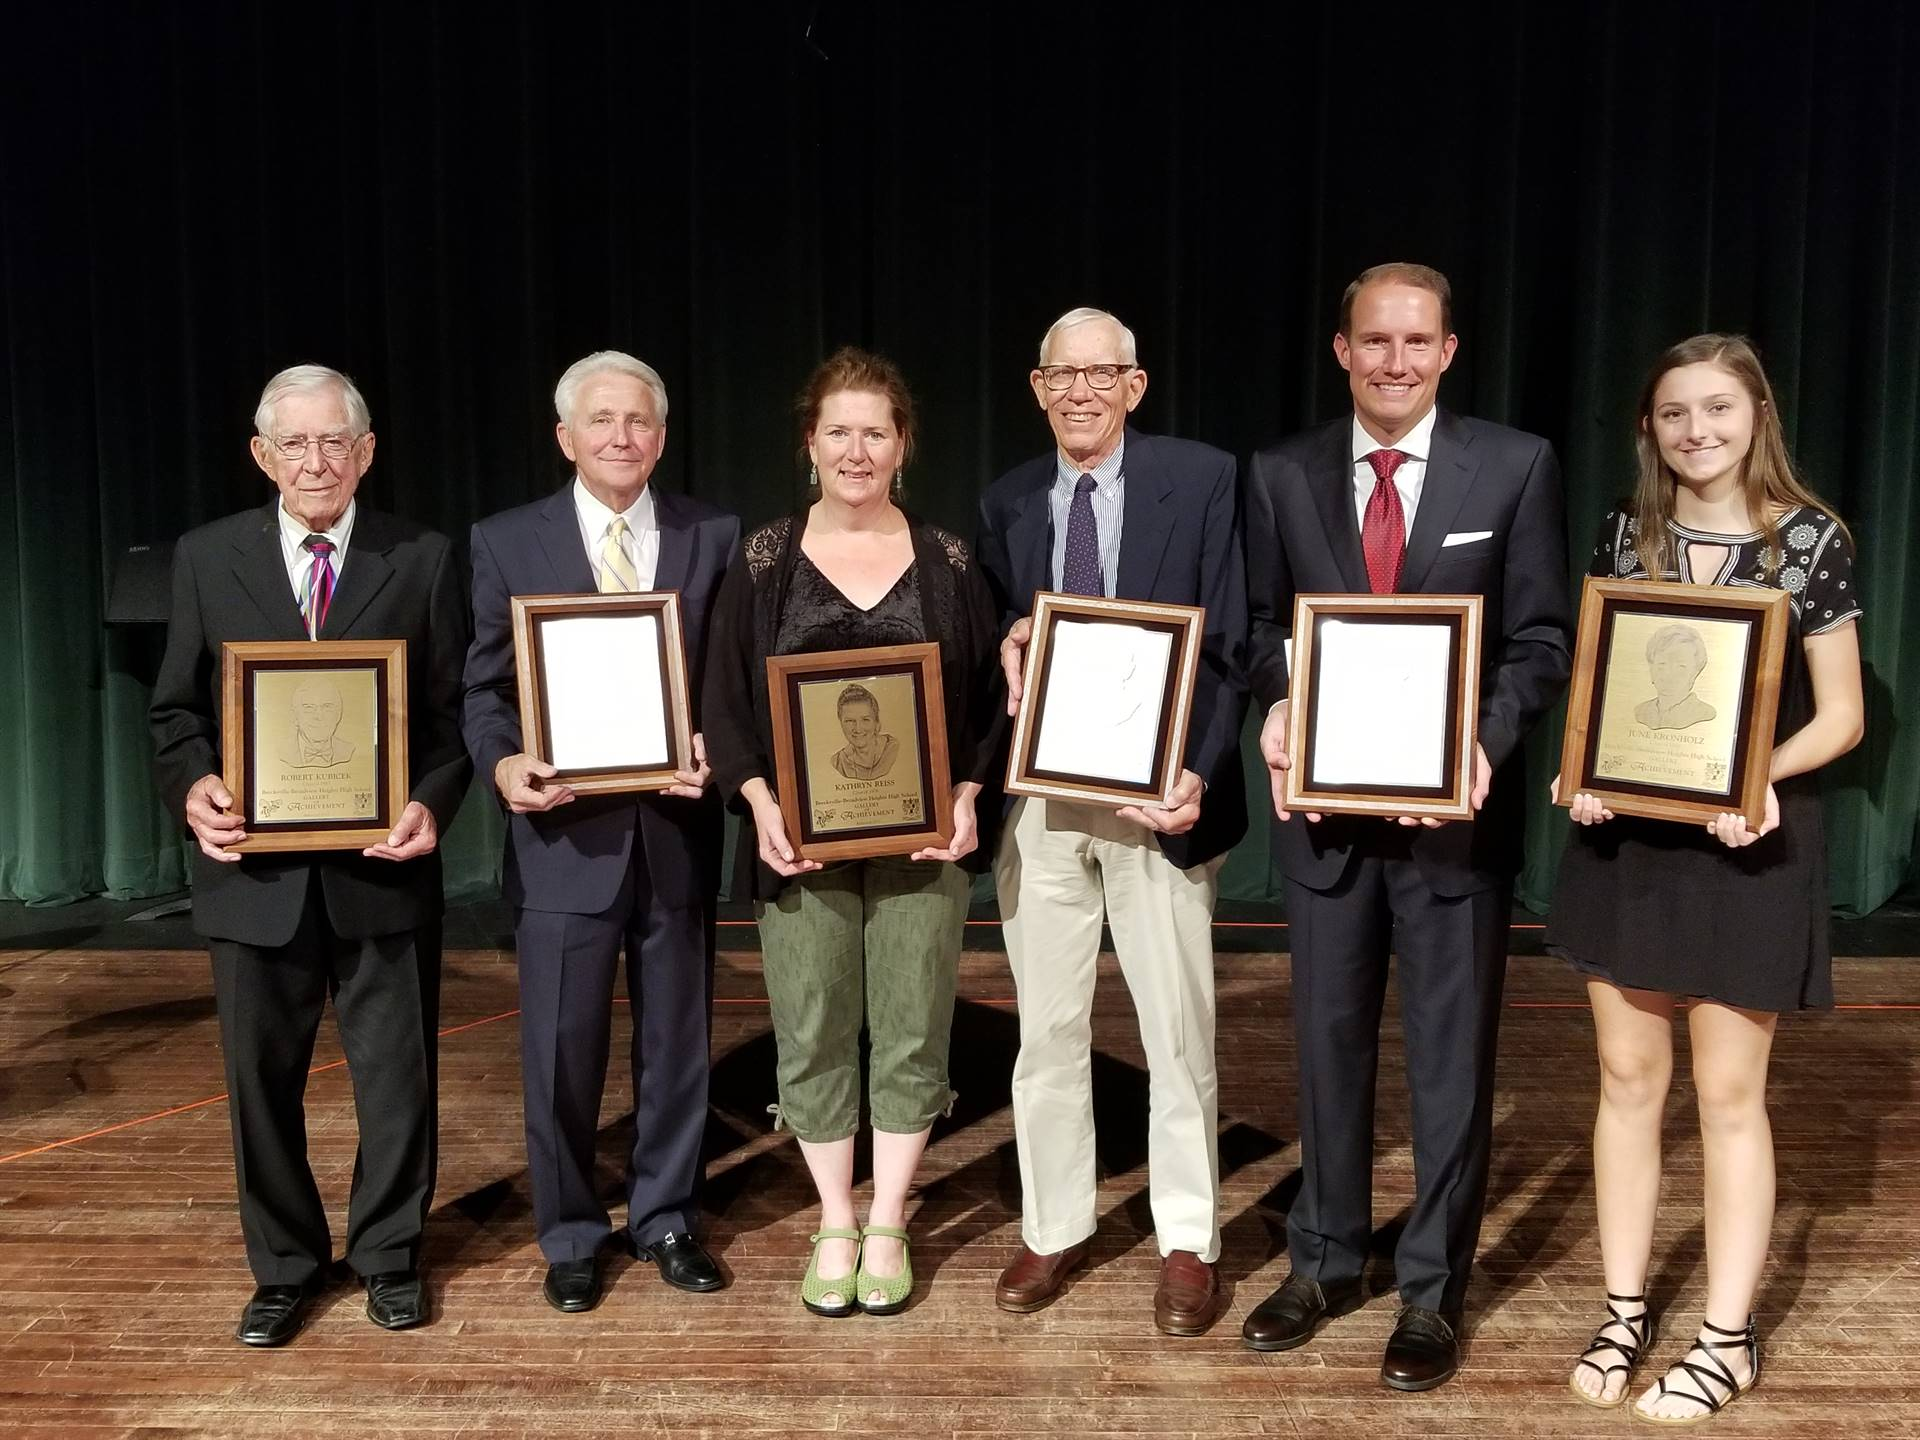 Gallery of Achievement Winners L to R: Robert Kubicek, James Harbuck, Kathryn Reiss, Herman Botzow,